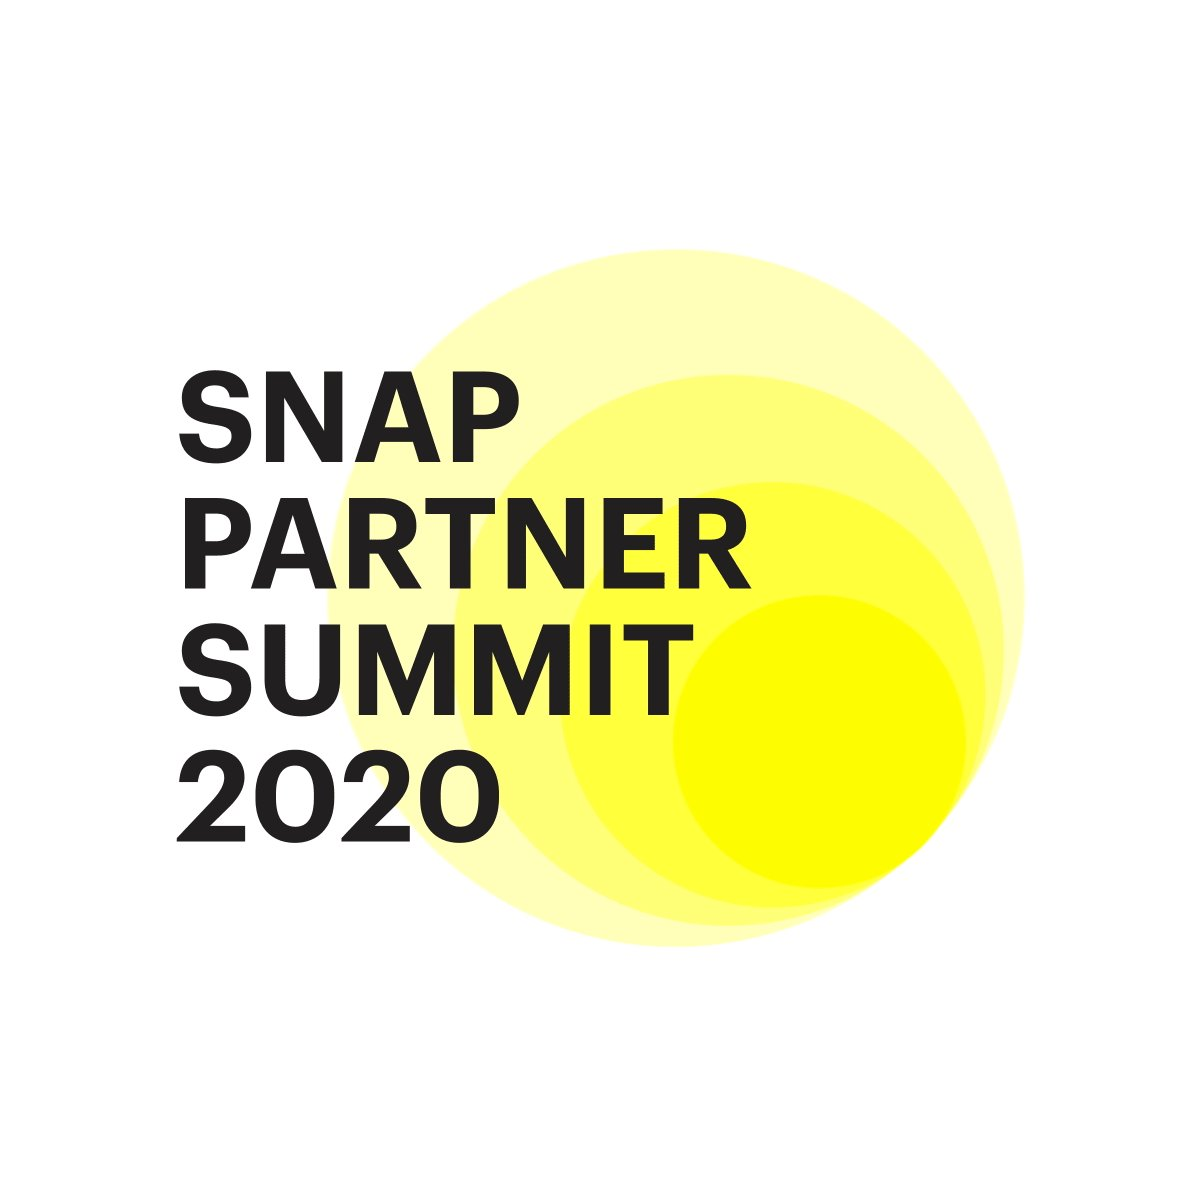 Mark your calendars 👉 Tune in LIVE June 11th as we unveil our latest updates and celebrate our partners. #SnapPartnerSummit